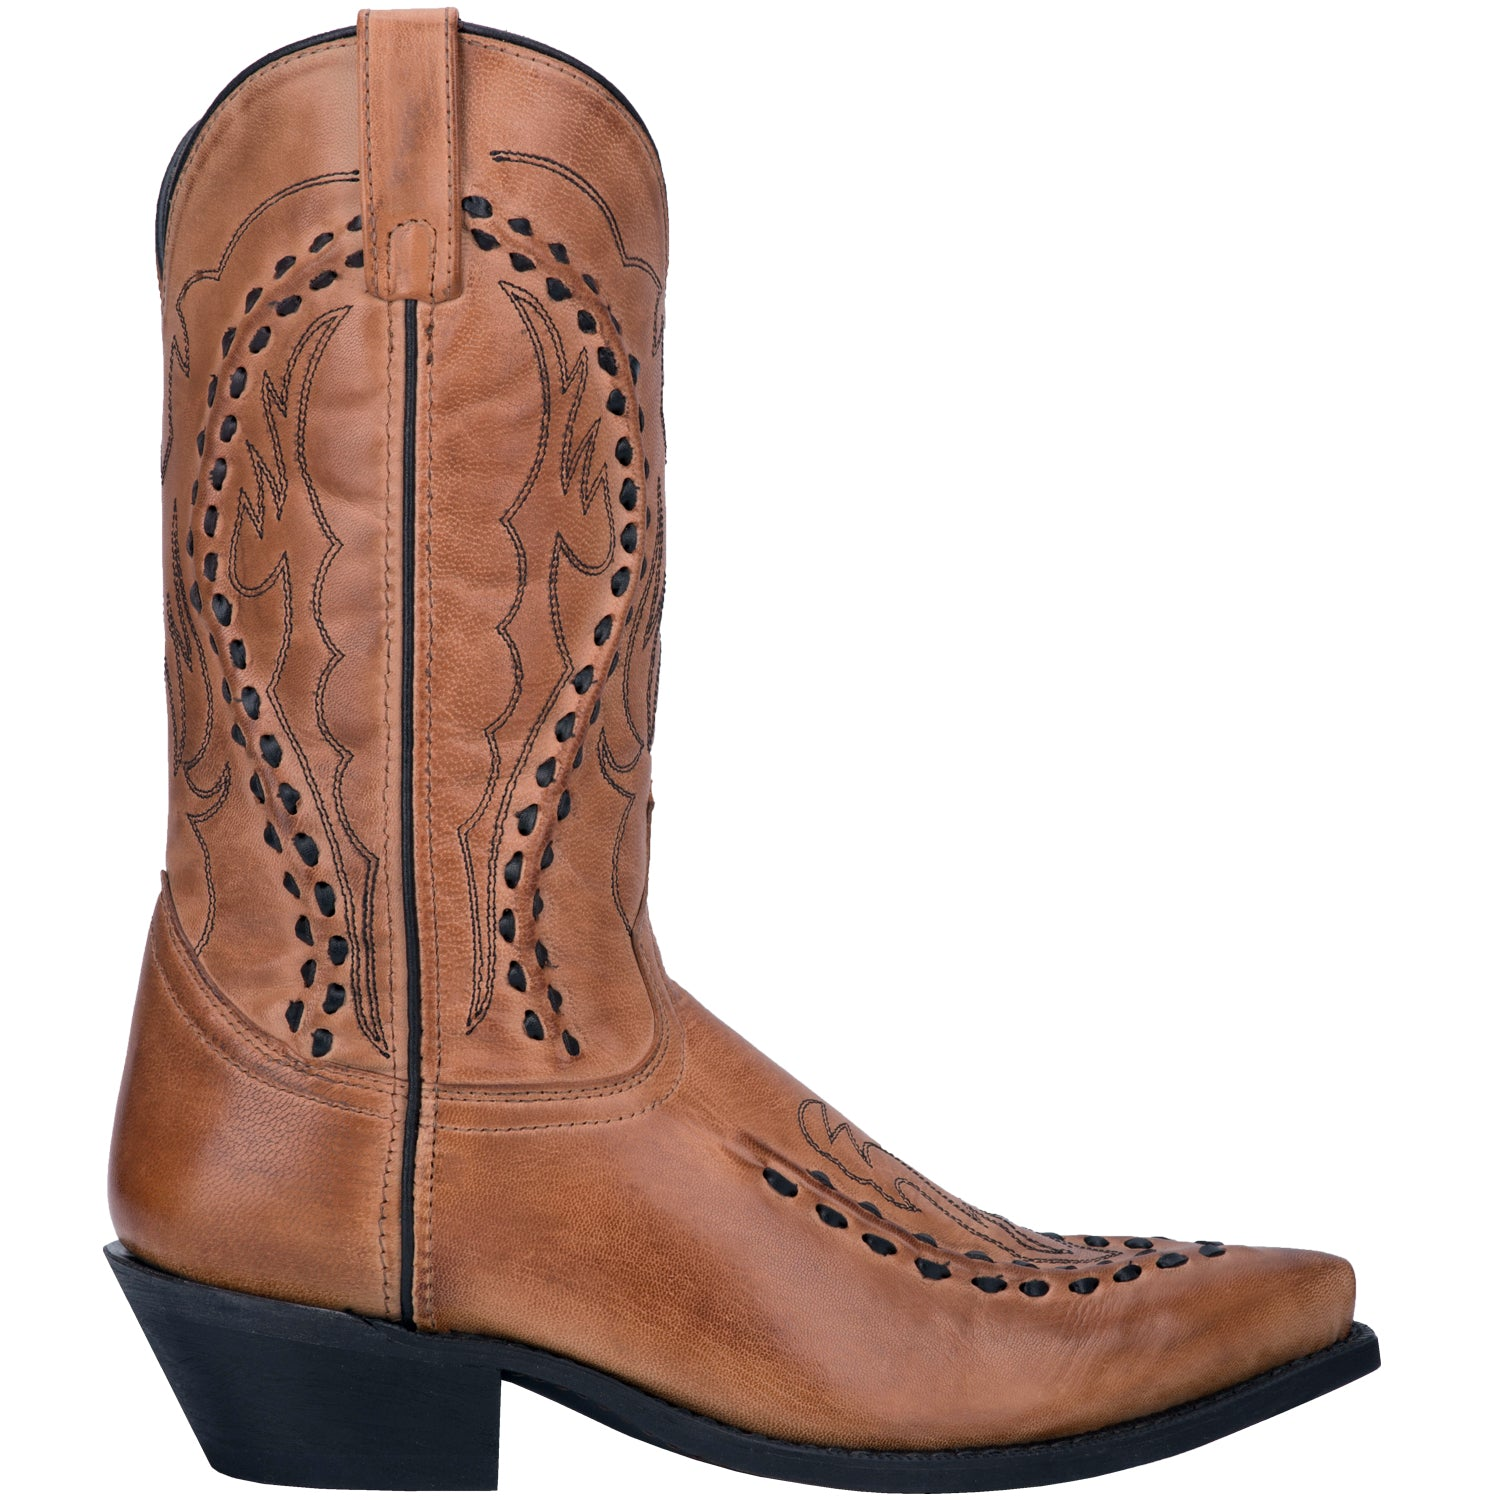 LARAMIE LEATHER BOOT 4196960600106